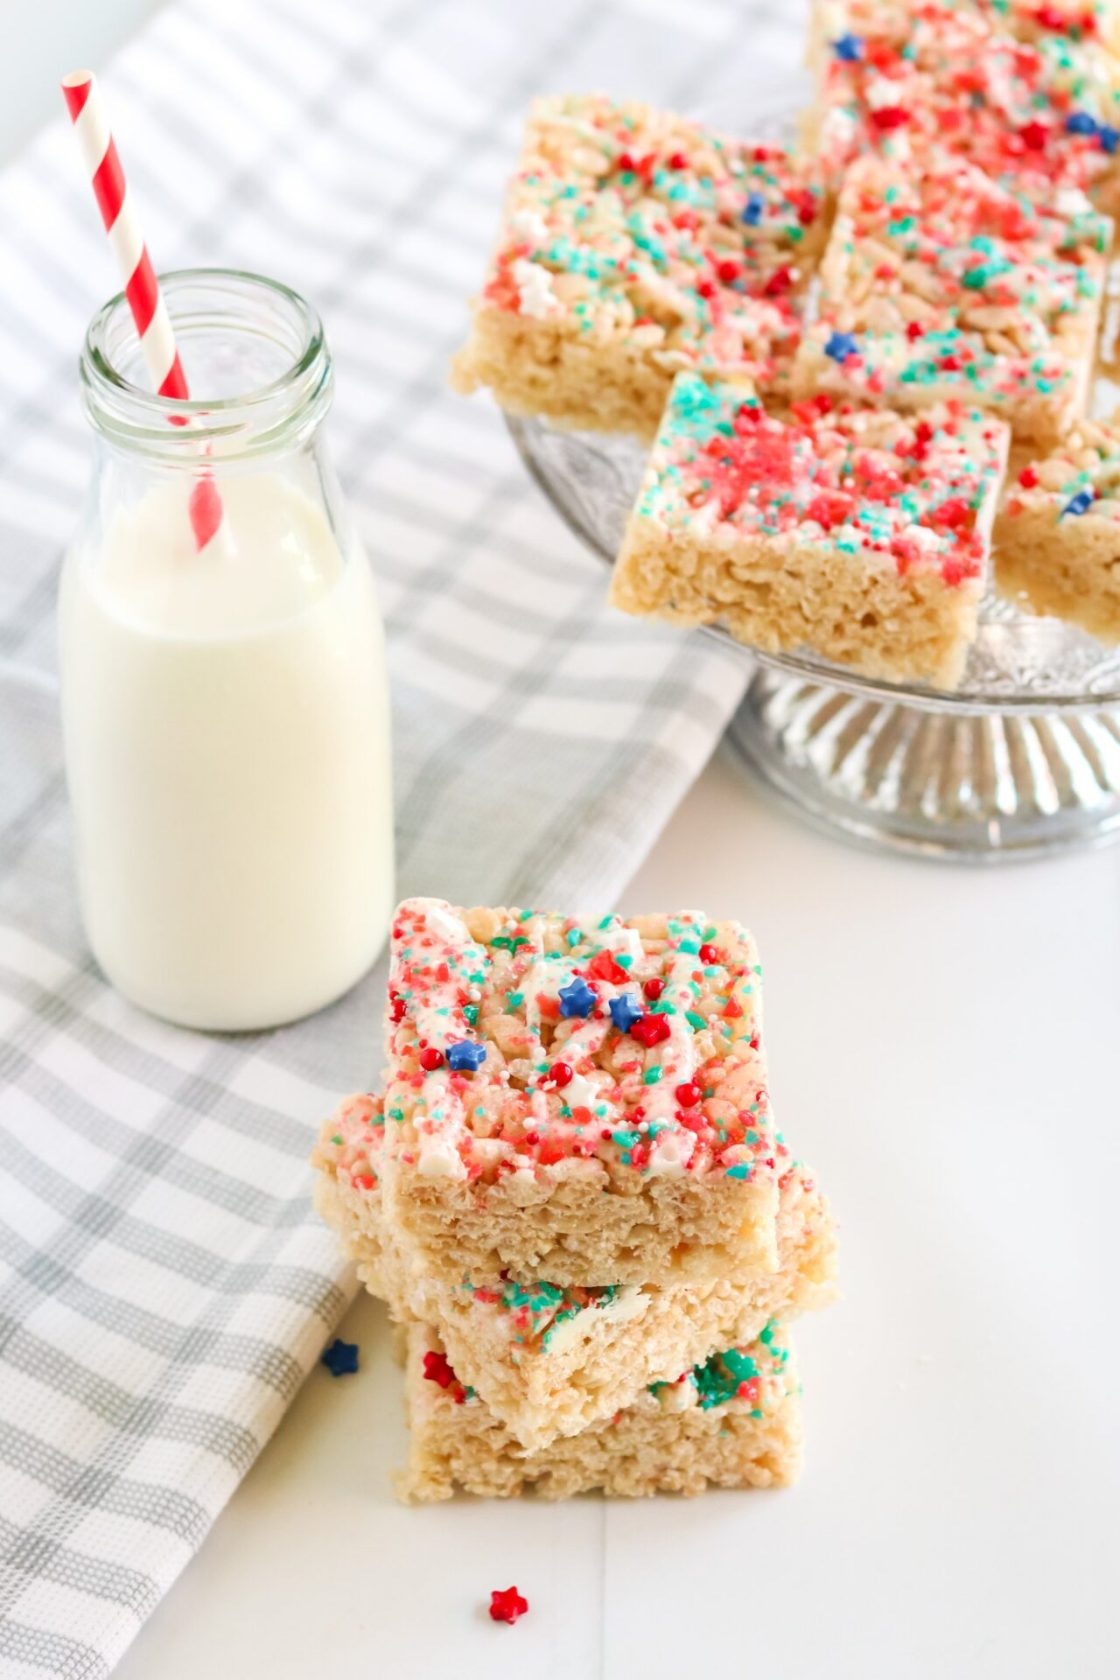 Looking for an easy Fourth of July recipe that will please everyone on the block? Well, check out this super simple Firecracker Rice Krispie Treats that will have everyone asking for more!